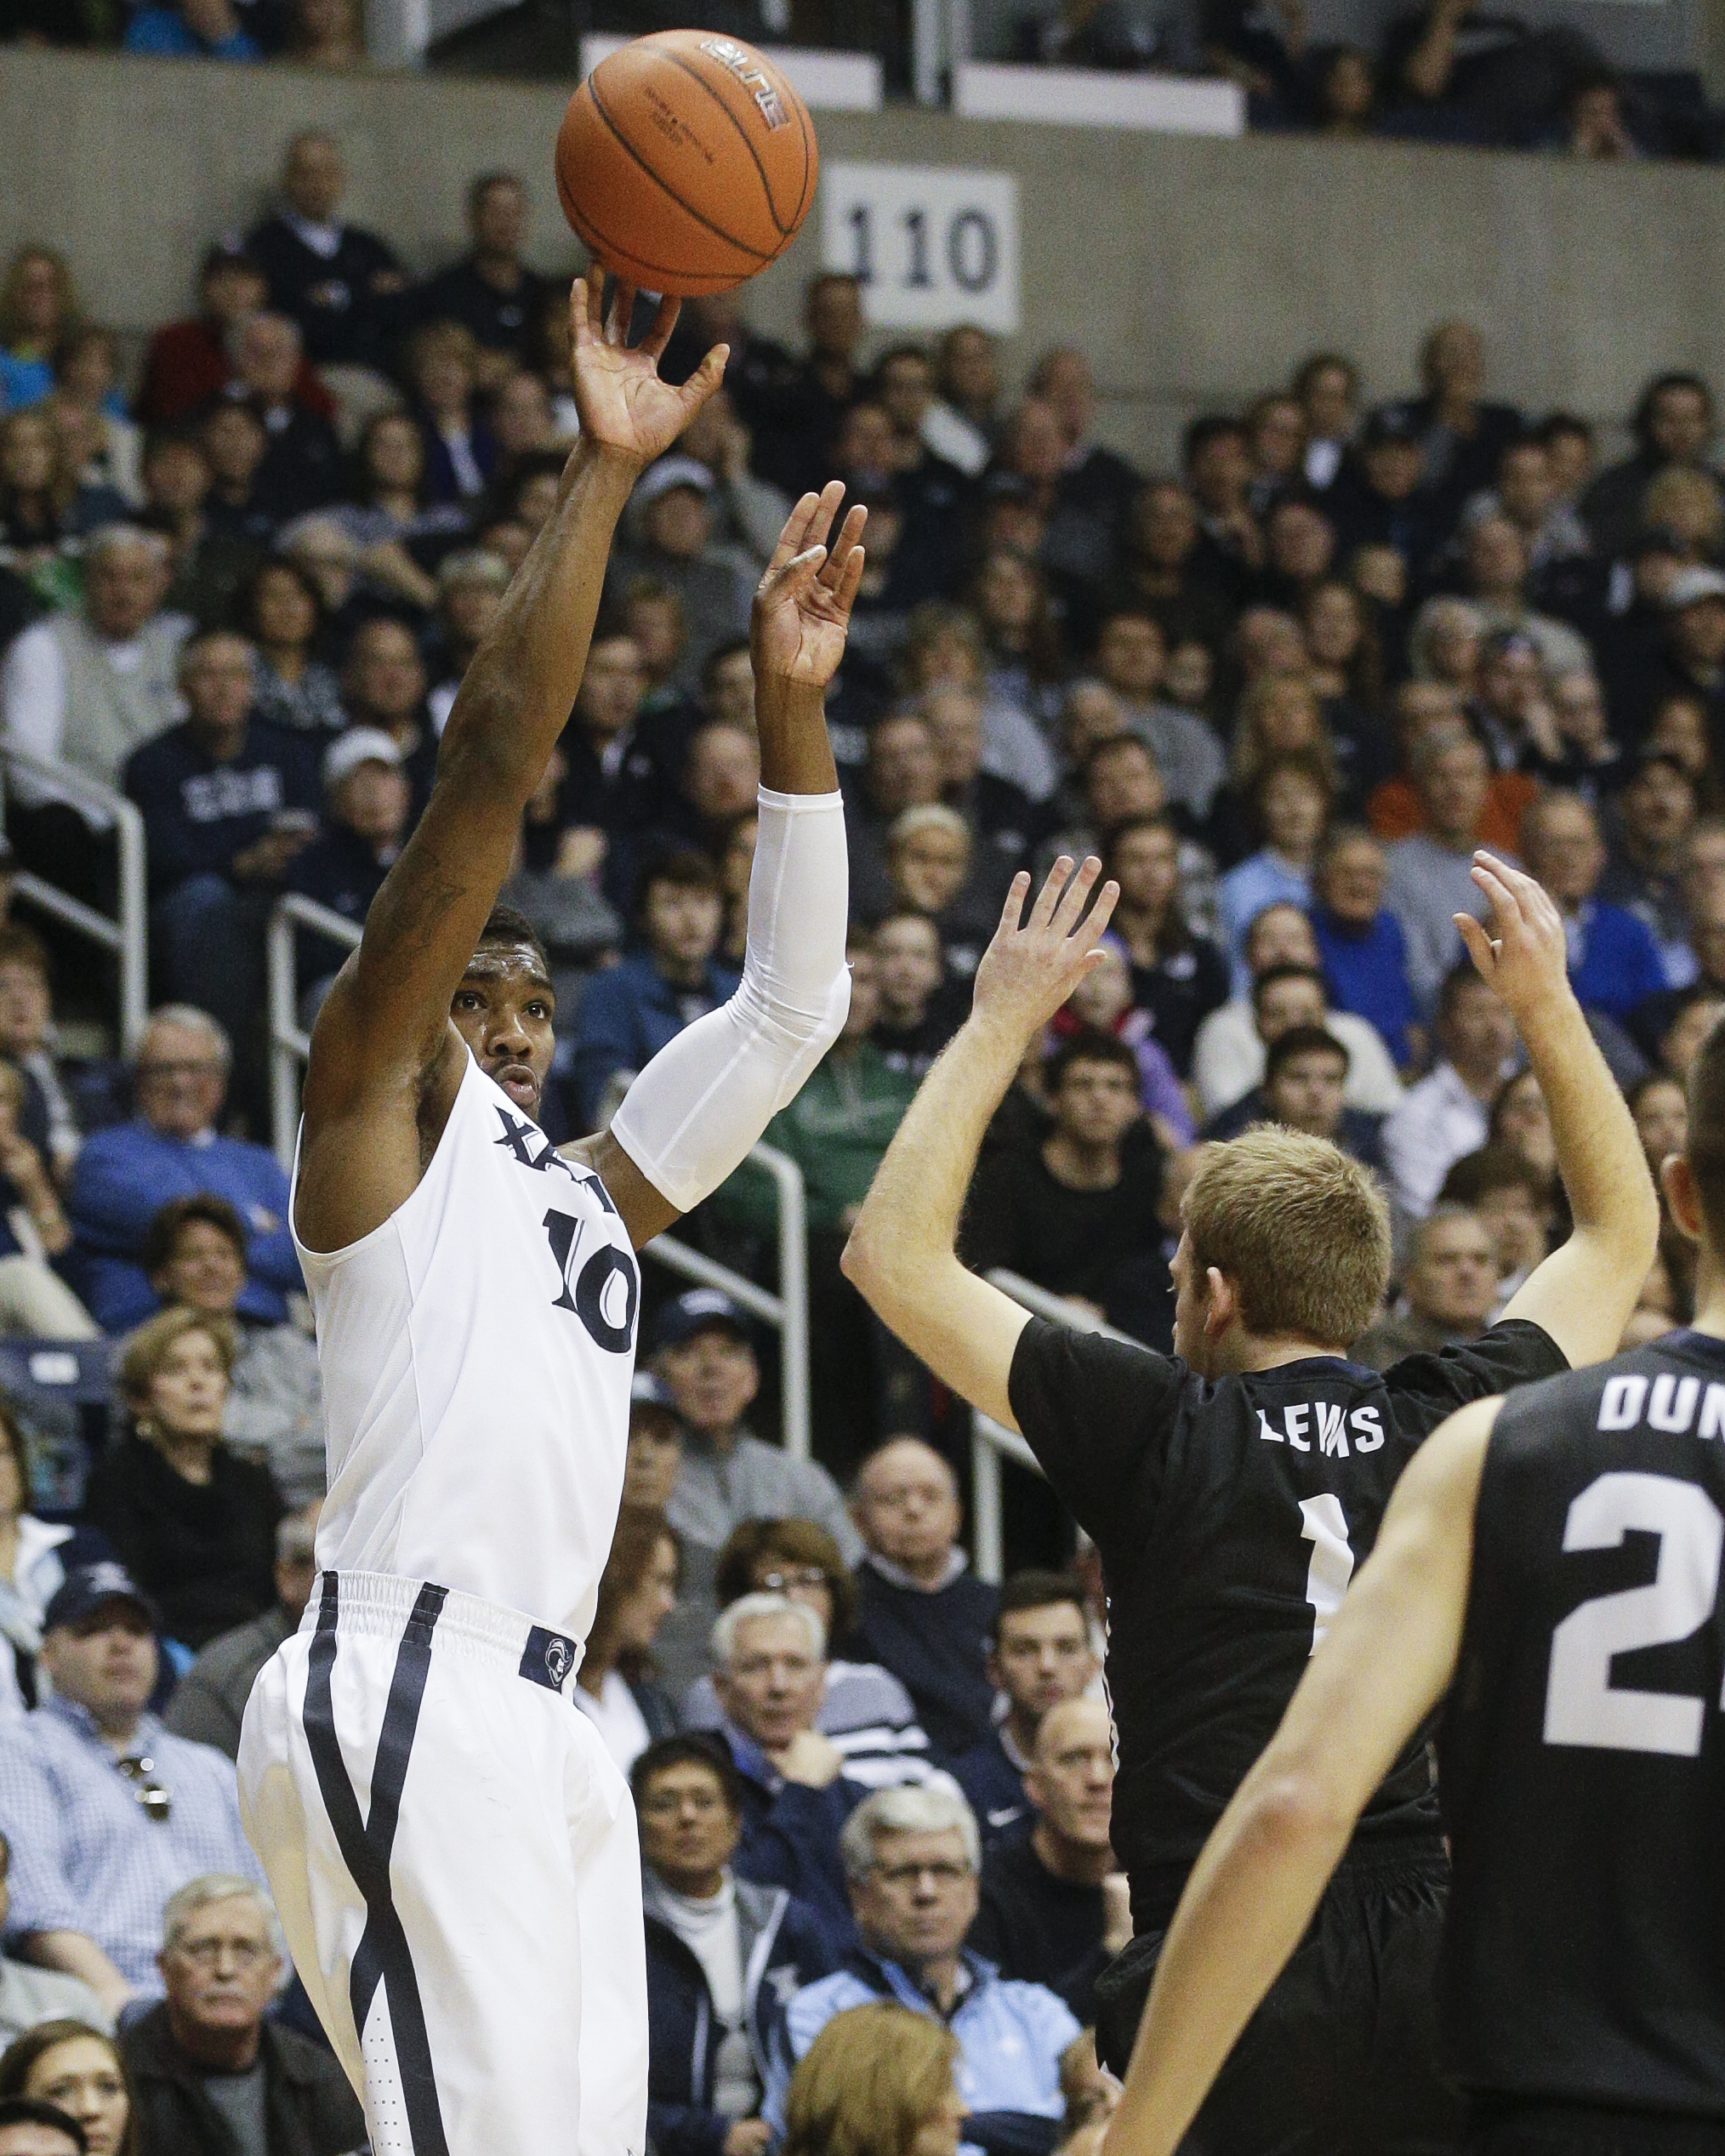 Xavier's Remy Abell (10) shoots over Butler's Tyler Lewis (1) in the first half of an NCAA college basketball game, Saturday, Jan. 2, 2016, in Cincinnati. (AP Photo/John Minchillo)